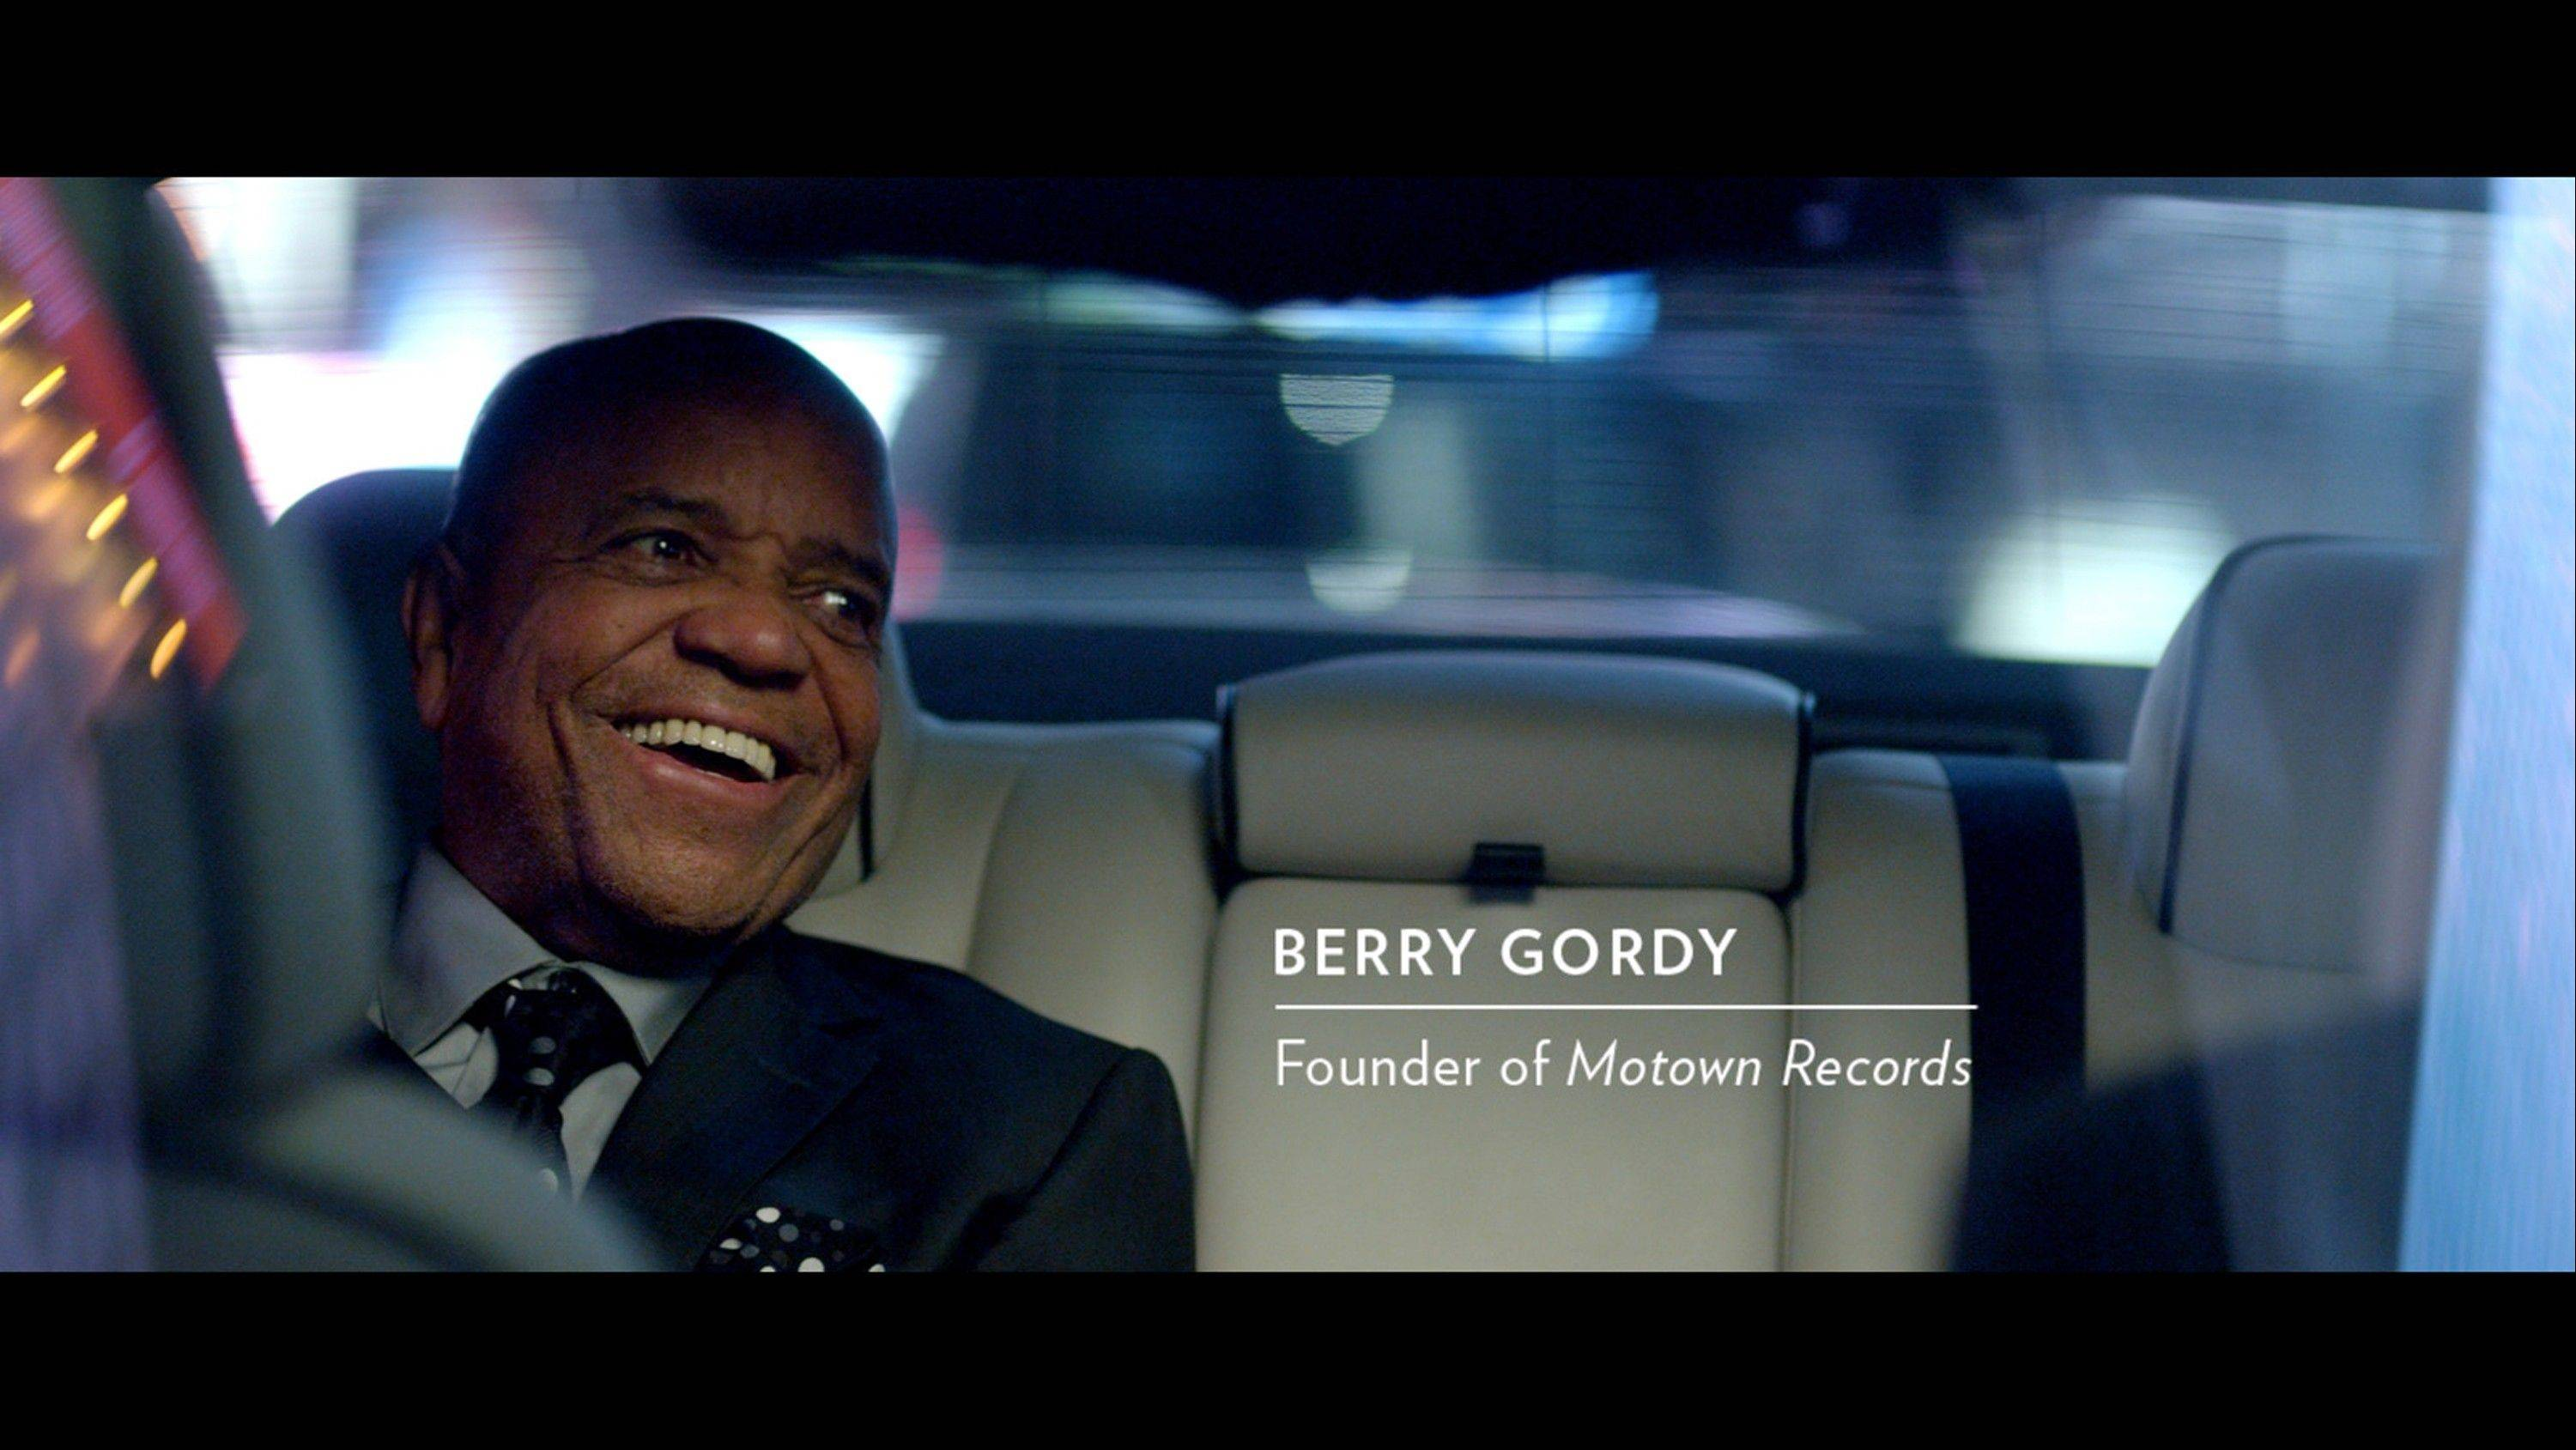 This image provided by the Chrysler Group LLC. shows Motown Records founder Berry Gordy in a Chrysler advertisement. The automaker on Thursday, Dec. 20, 2012 launched the ad campaign that promotes both the new 2013 Chrysler 300 Motown Edition as well as an upcoming Broadway musical based on Gordy's life.